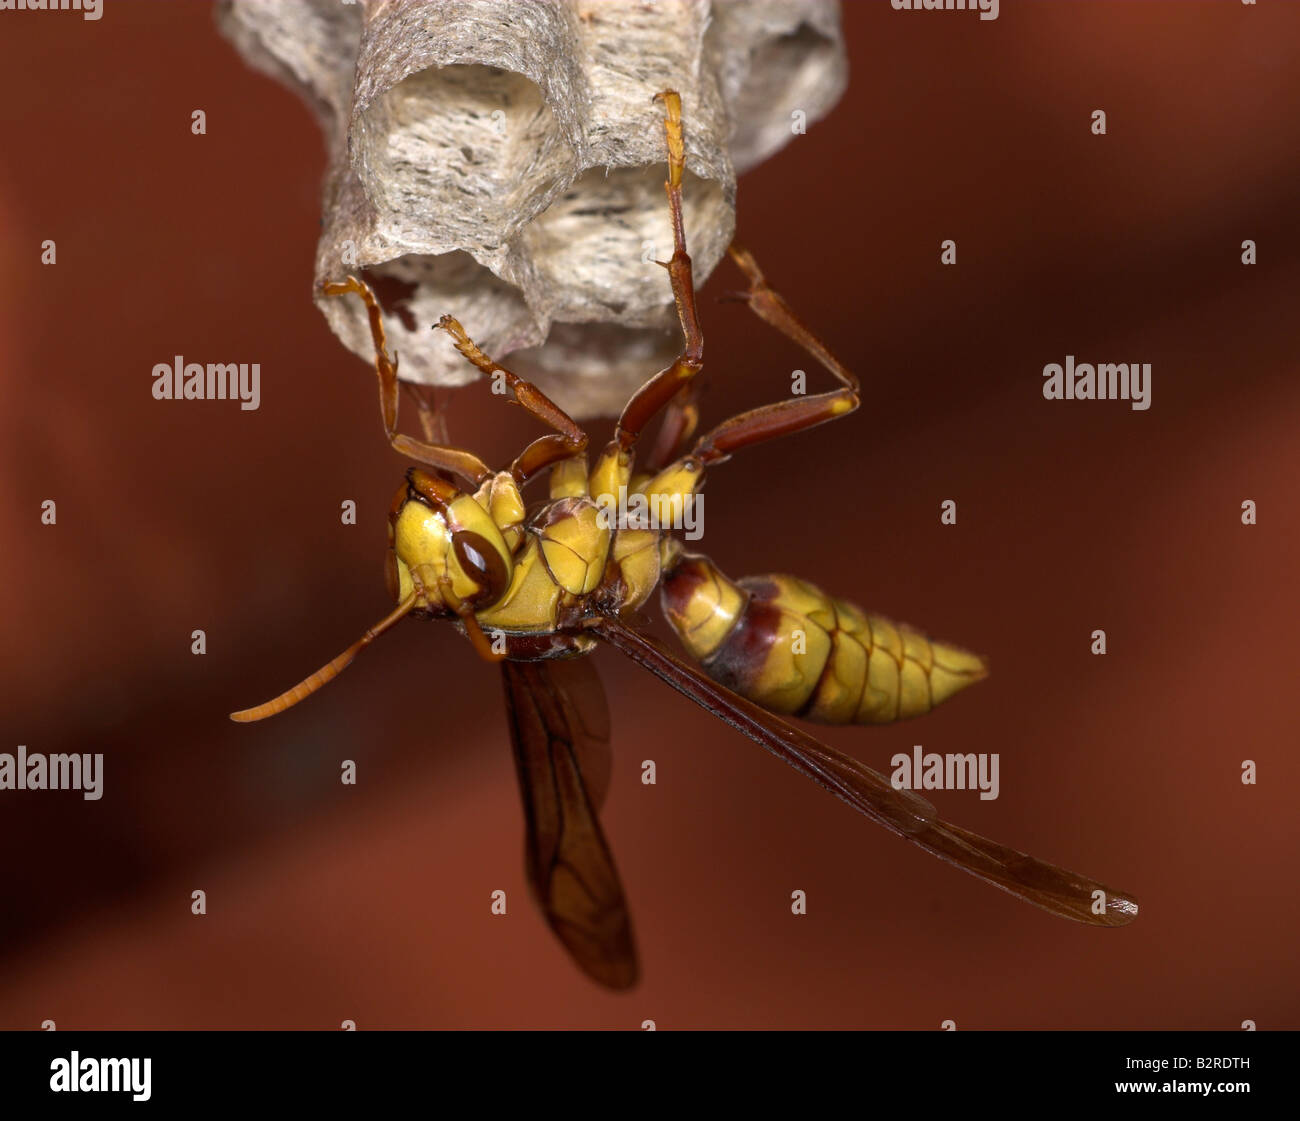 Paper Wasp subfamily Polistinae Costa Rica Stock Photo